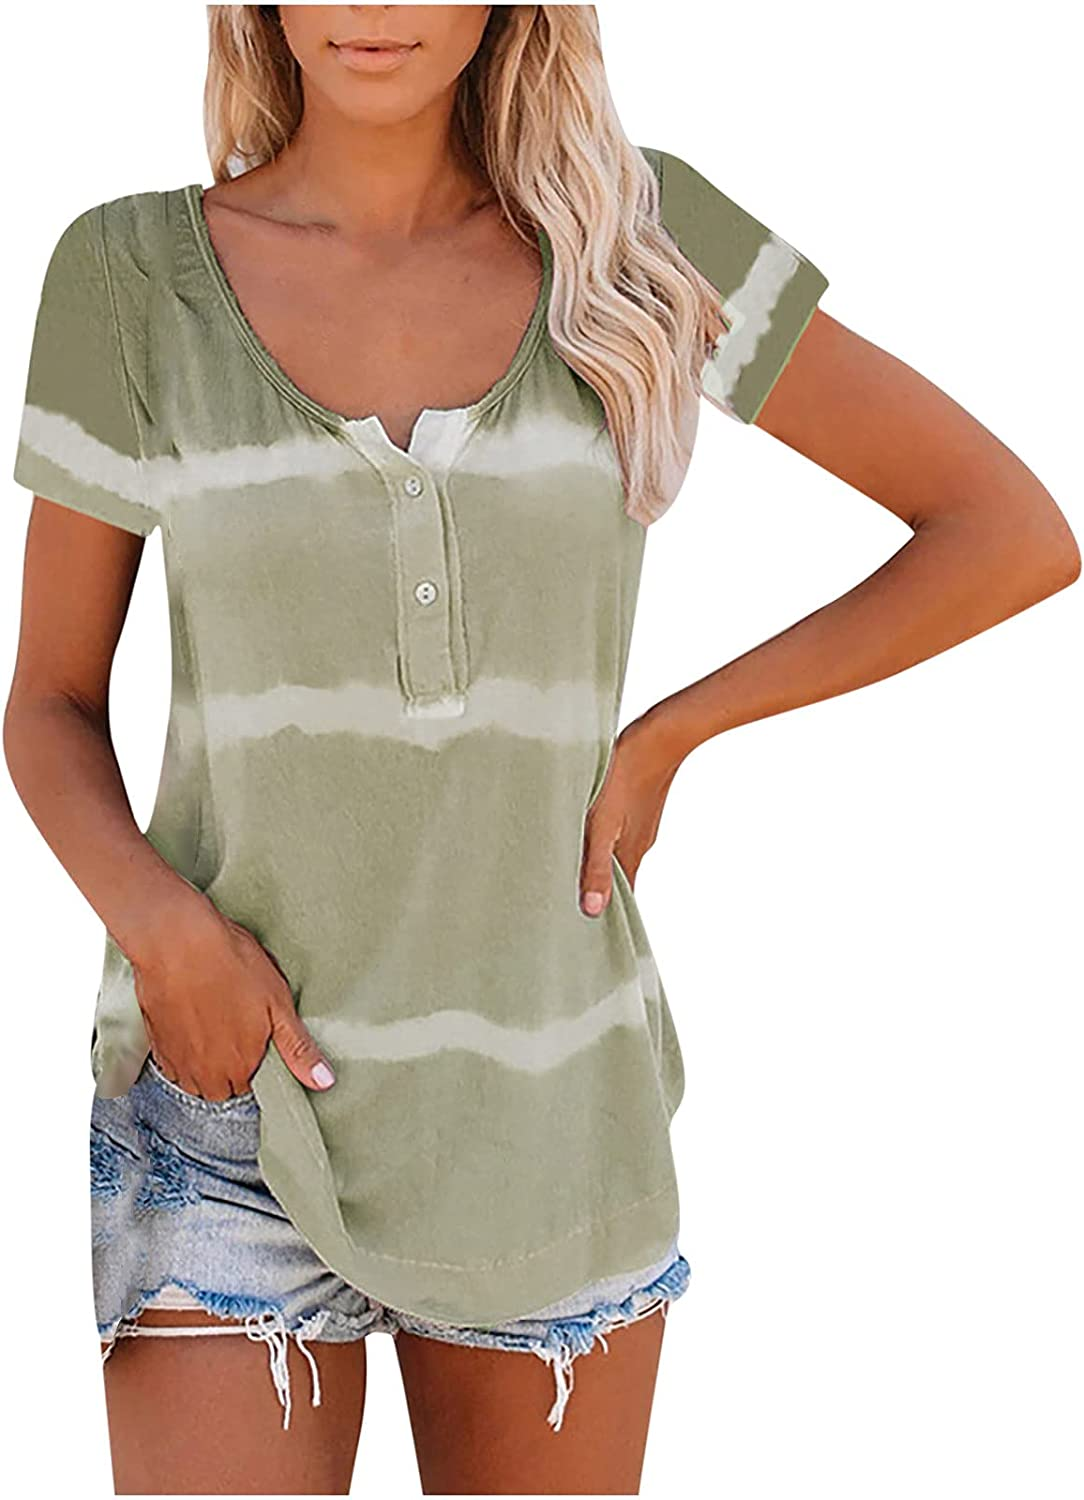 MeikoHome Stripe Tunic Top for Women Round Neck Tshirt Half Button Tees Short Sleeve T Shirt Soft Casual Pullover